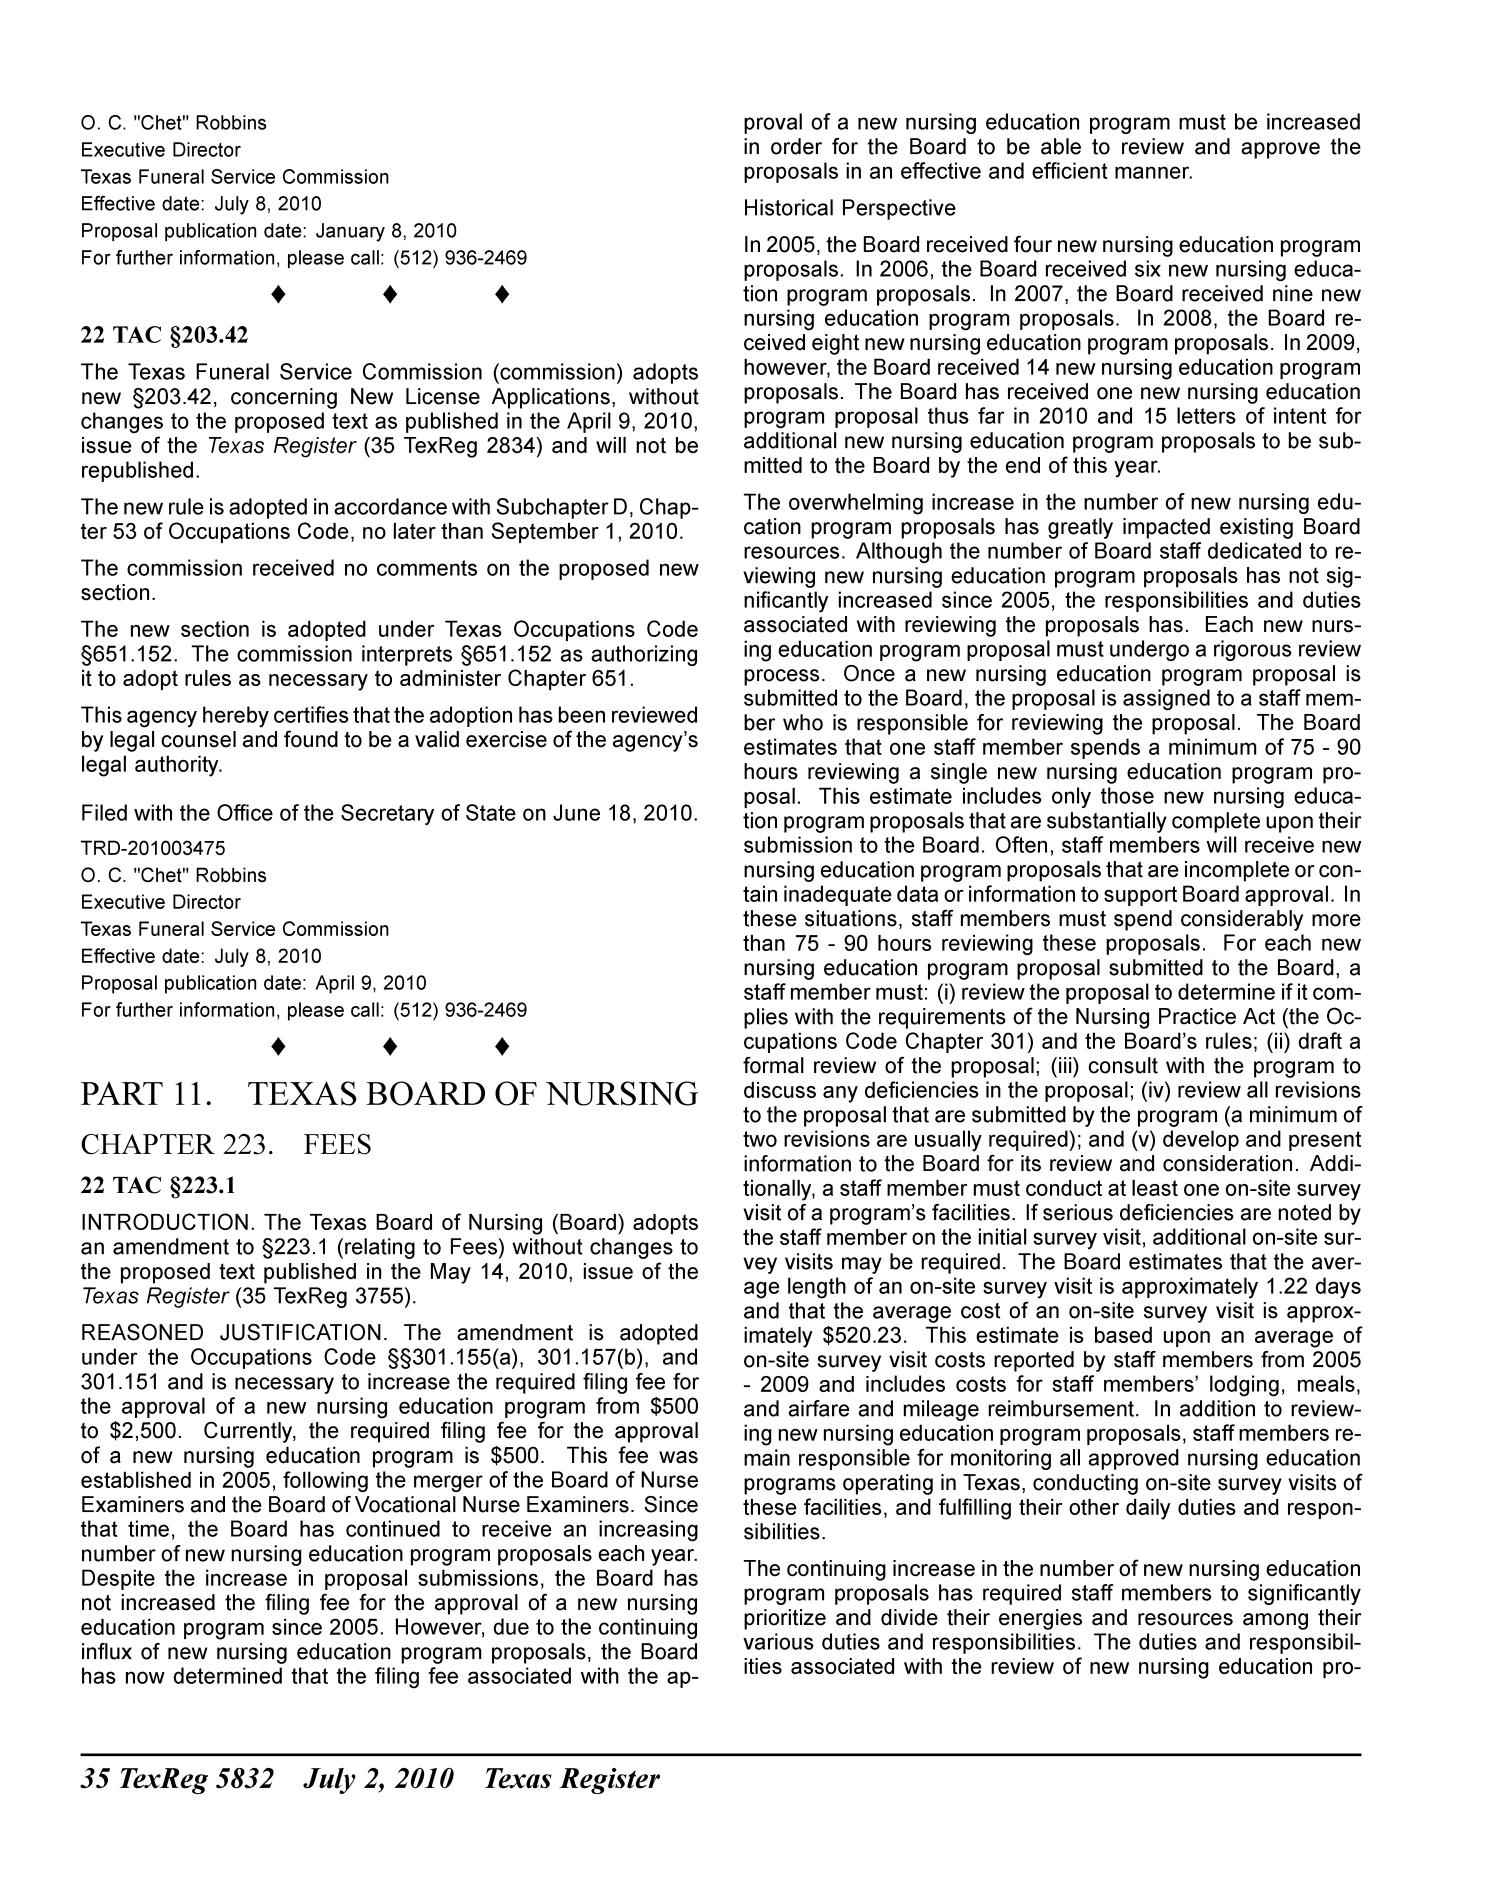 Texas Register, Volume 35, Number 27, Pages 5625-5980, July 2, 2010                                                                                                      5832